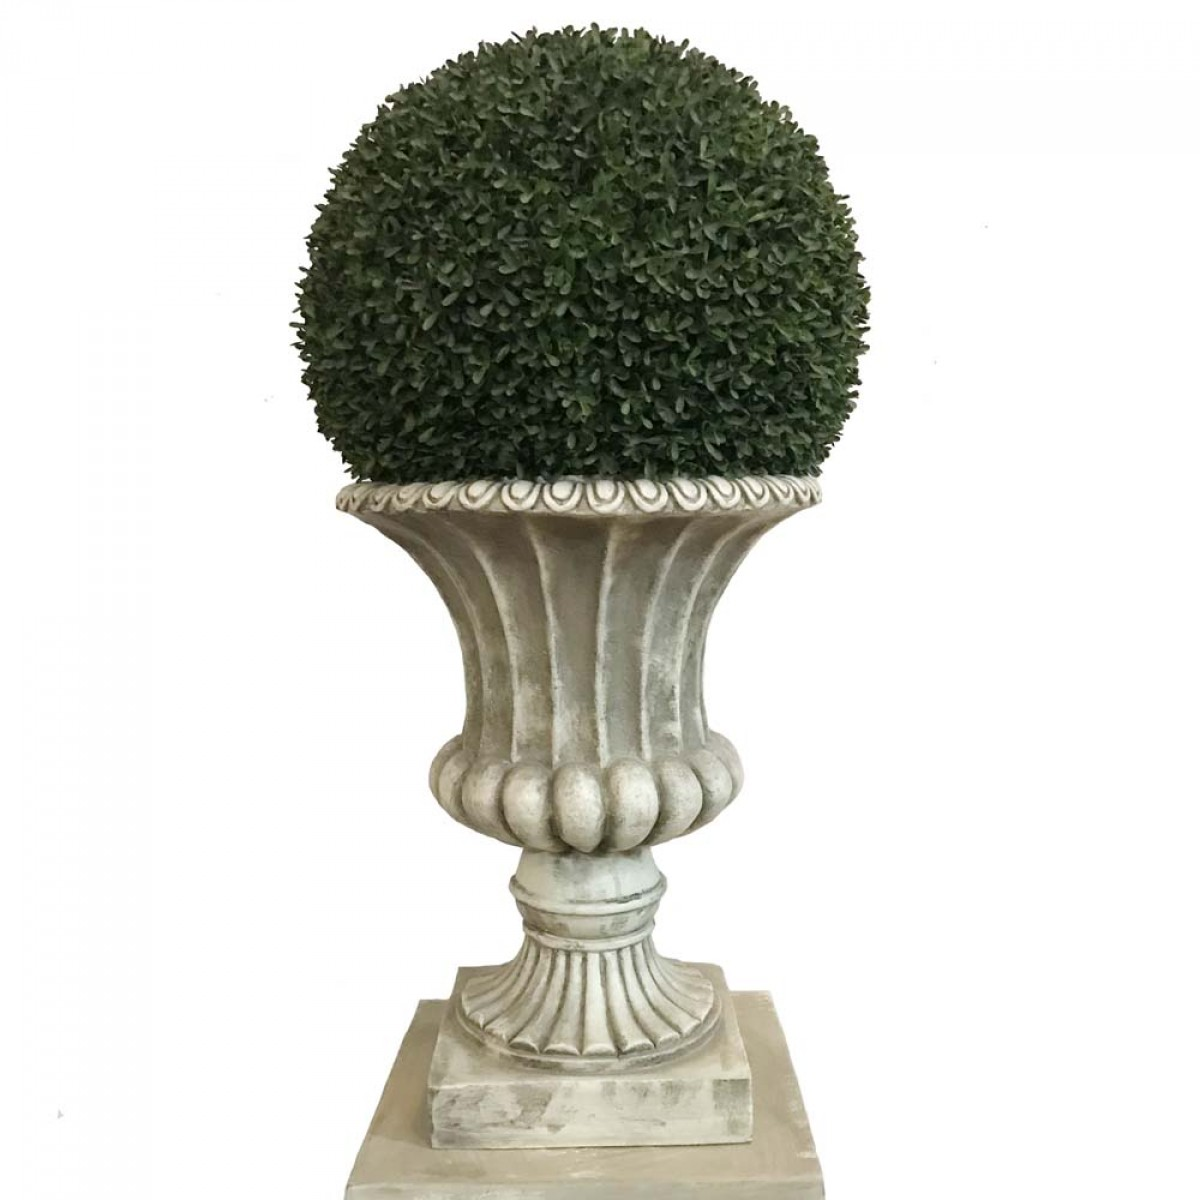 Fibreglass Pedestal and Urn | Artificial Trees and Flowers Wholesale